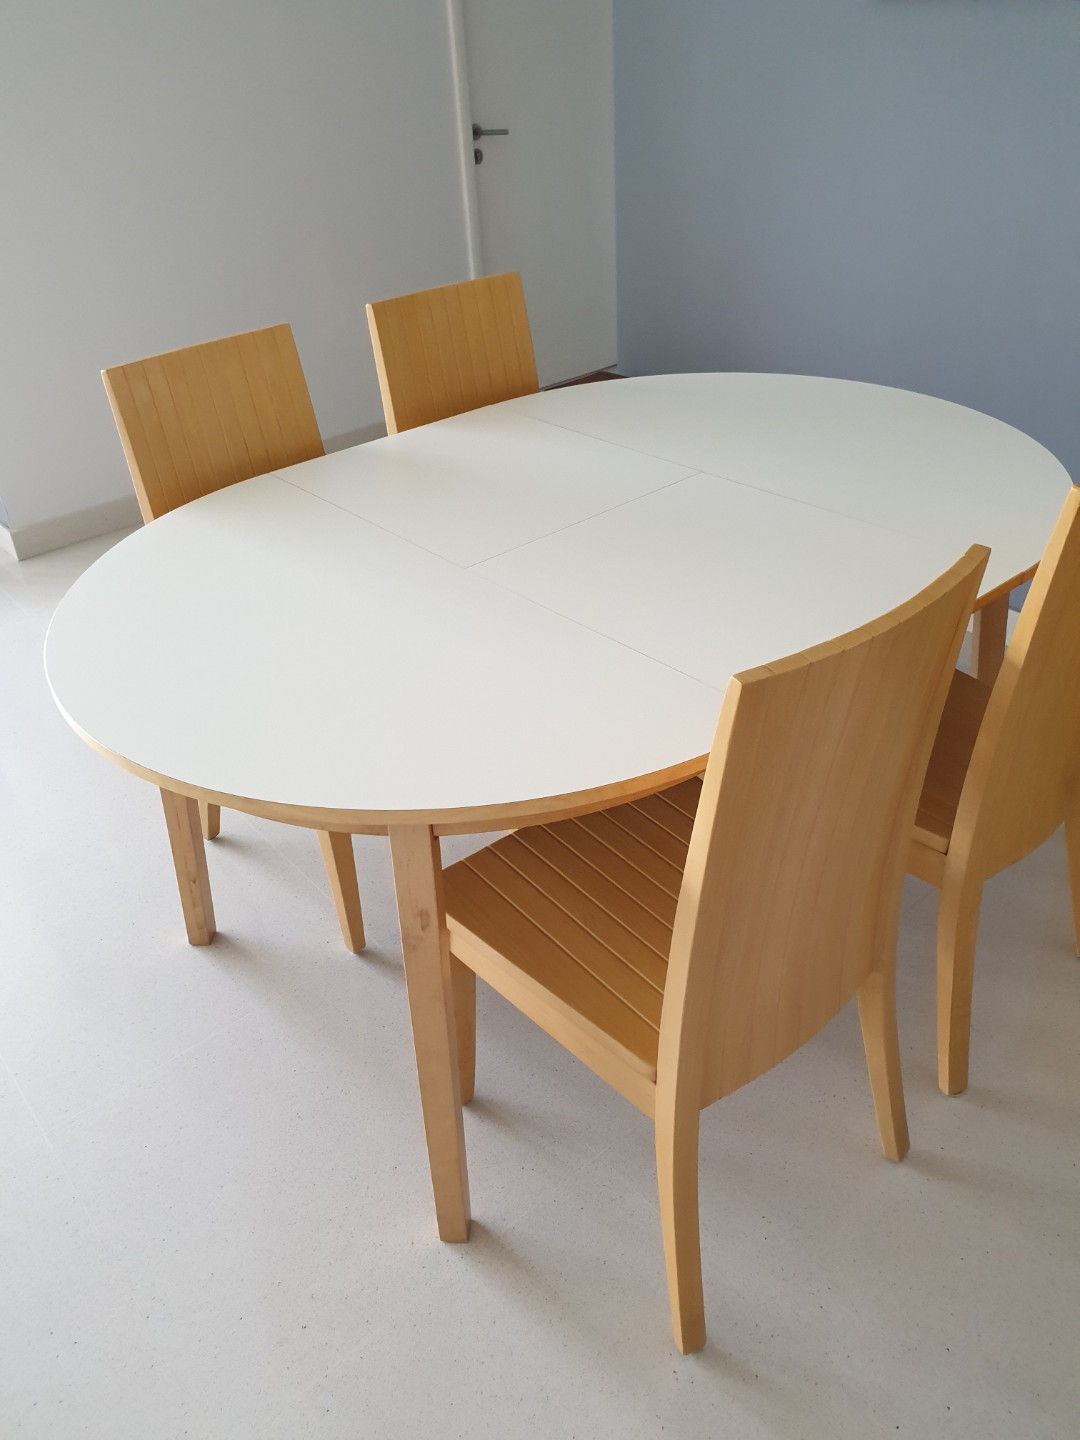 Ikea Extendable Dining Table With Set Of Four Wooden Chairs Furniture Tables Chairs On Carousell